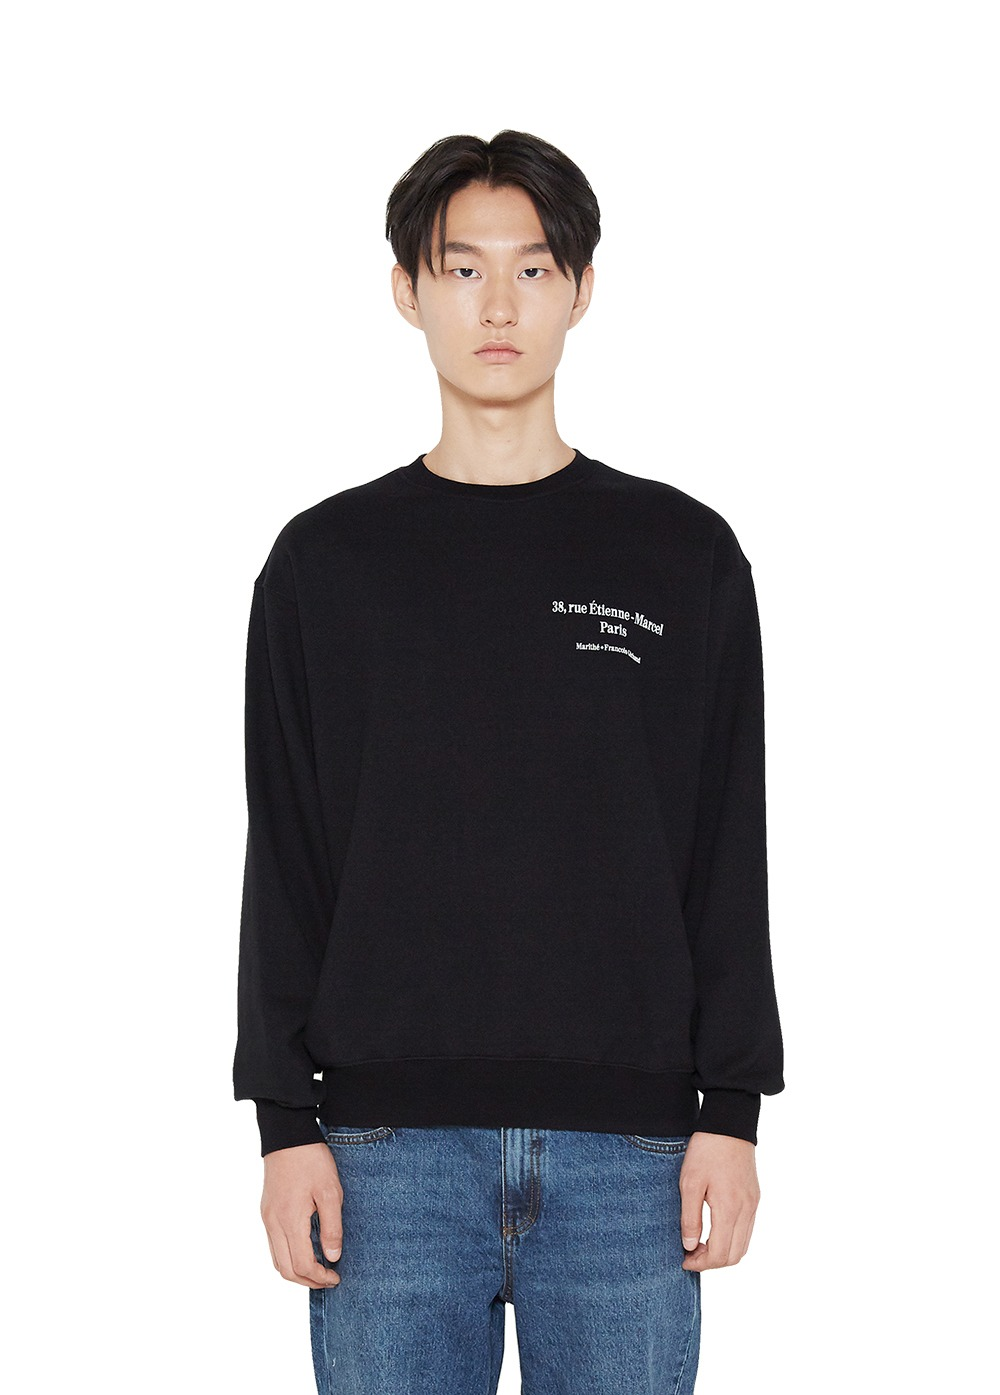 MFG L ADRESSE SWEATSHIRT black